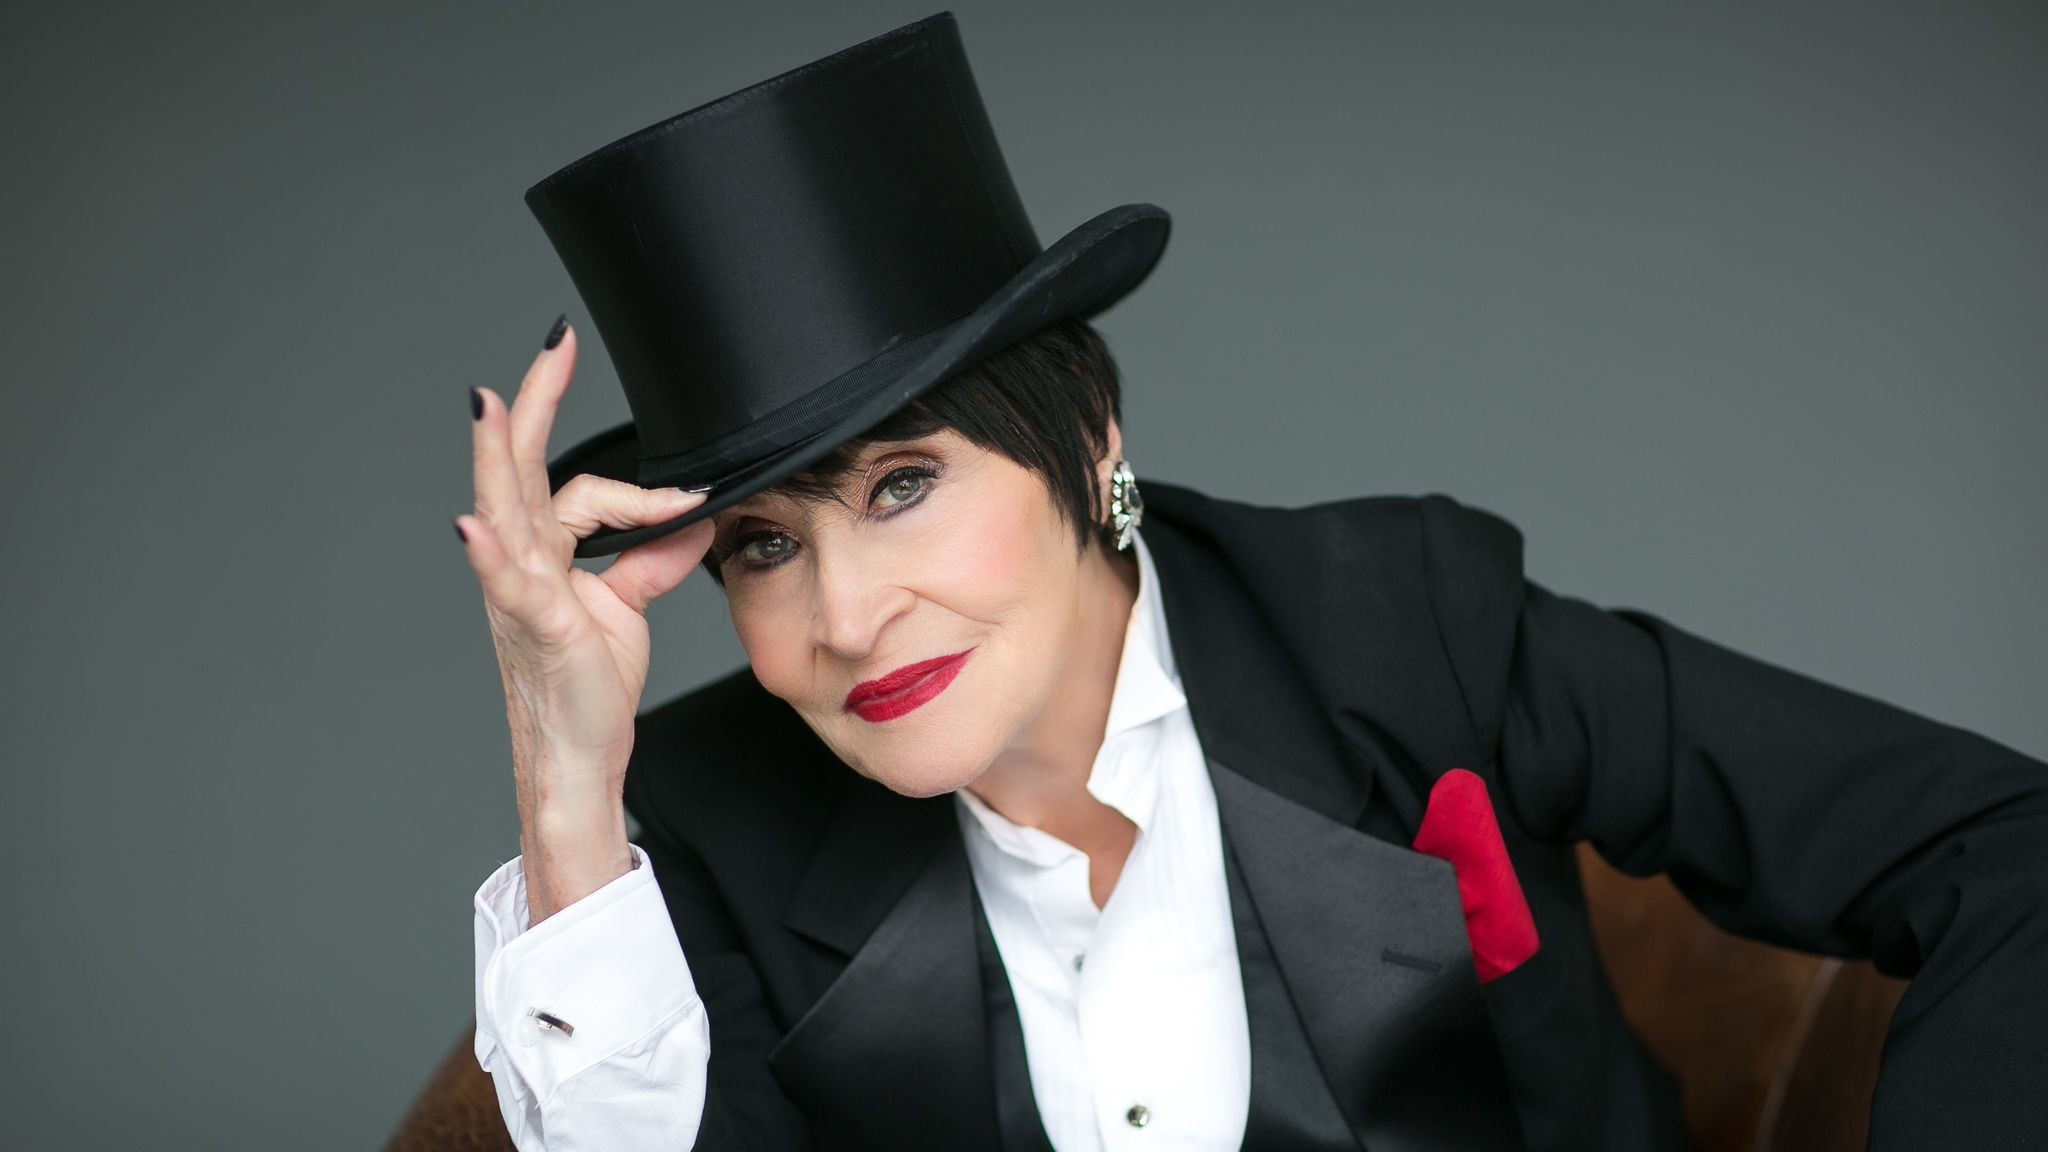 Broadway stars Chita Rivera and Tommy Tune to headline concert at Irvine Barclay Theatre | The Los Angeles Times